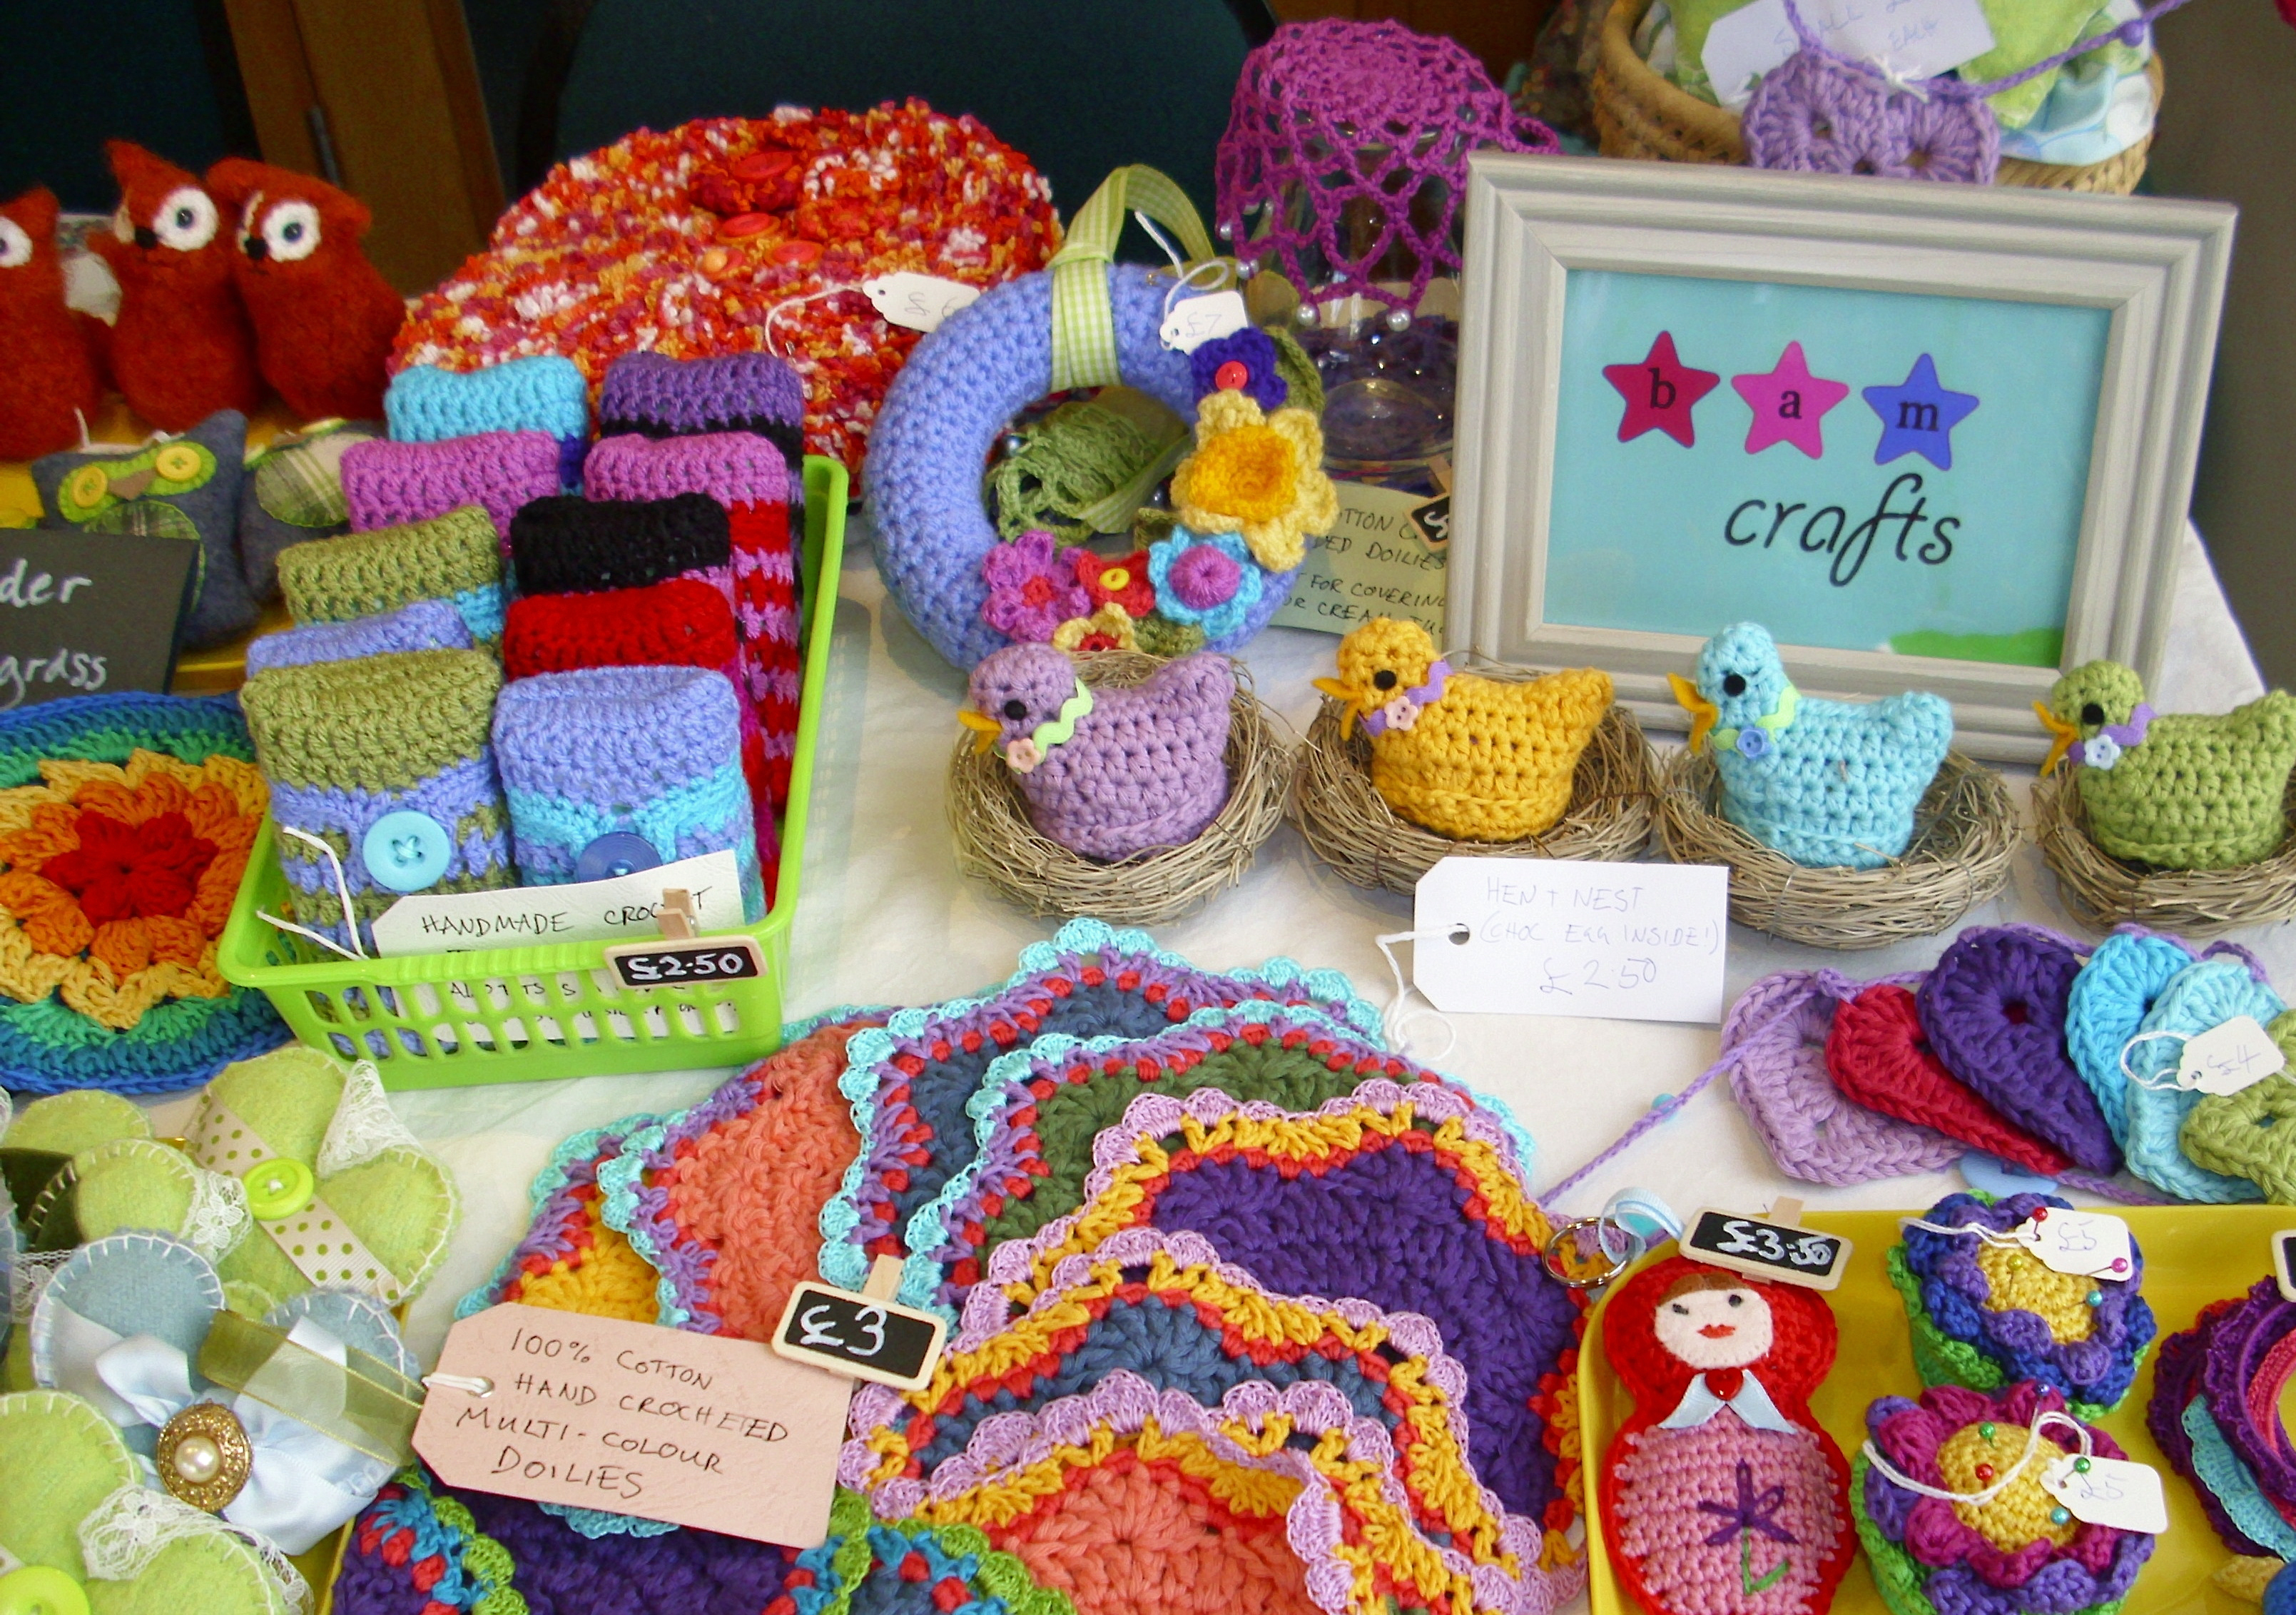 Frames magnets crocheted easteriness and fifty yes for Crochet crafts that sell well